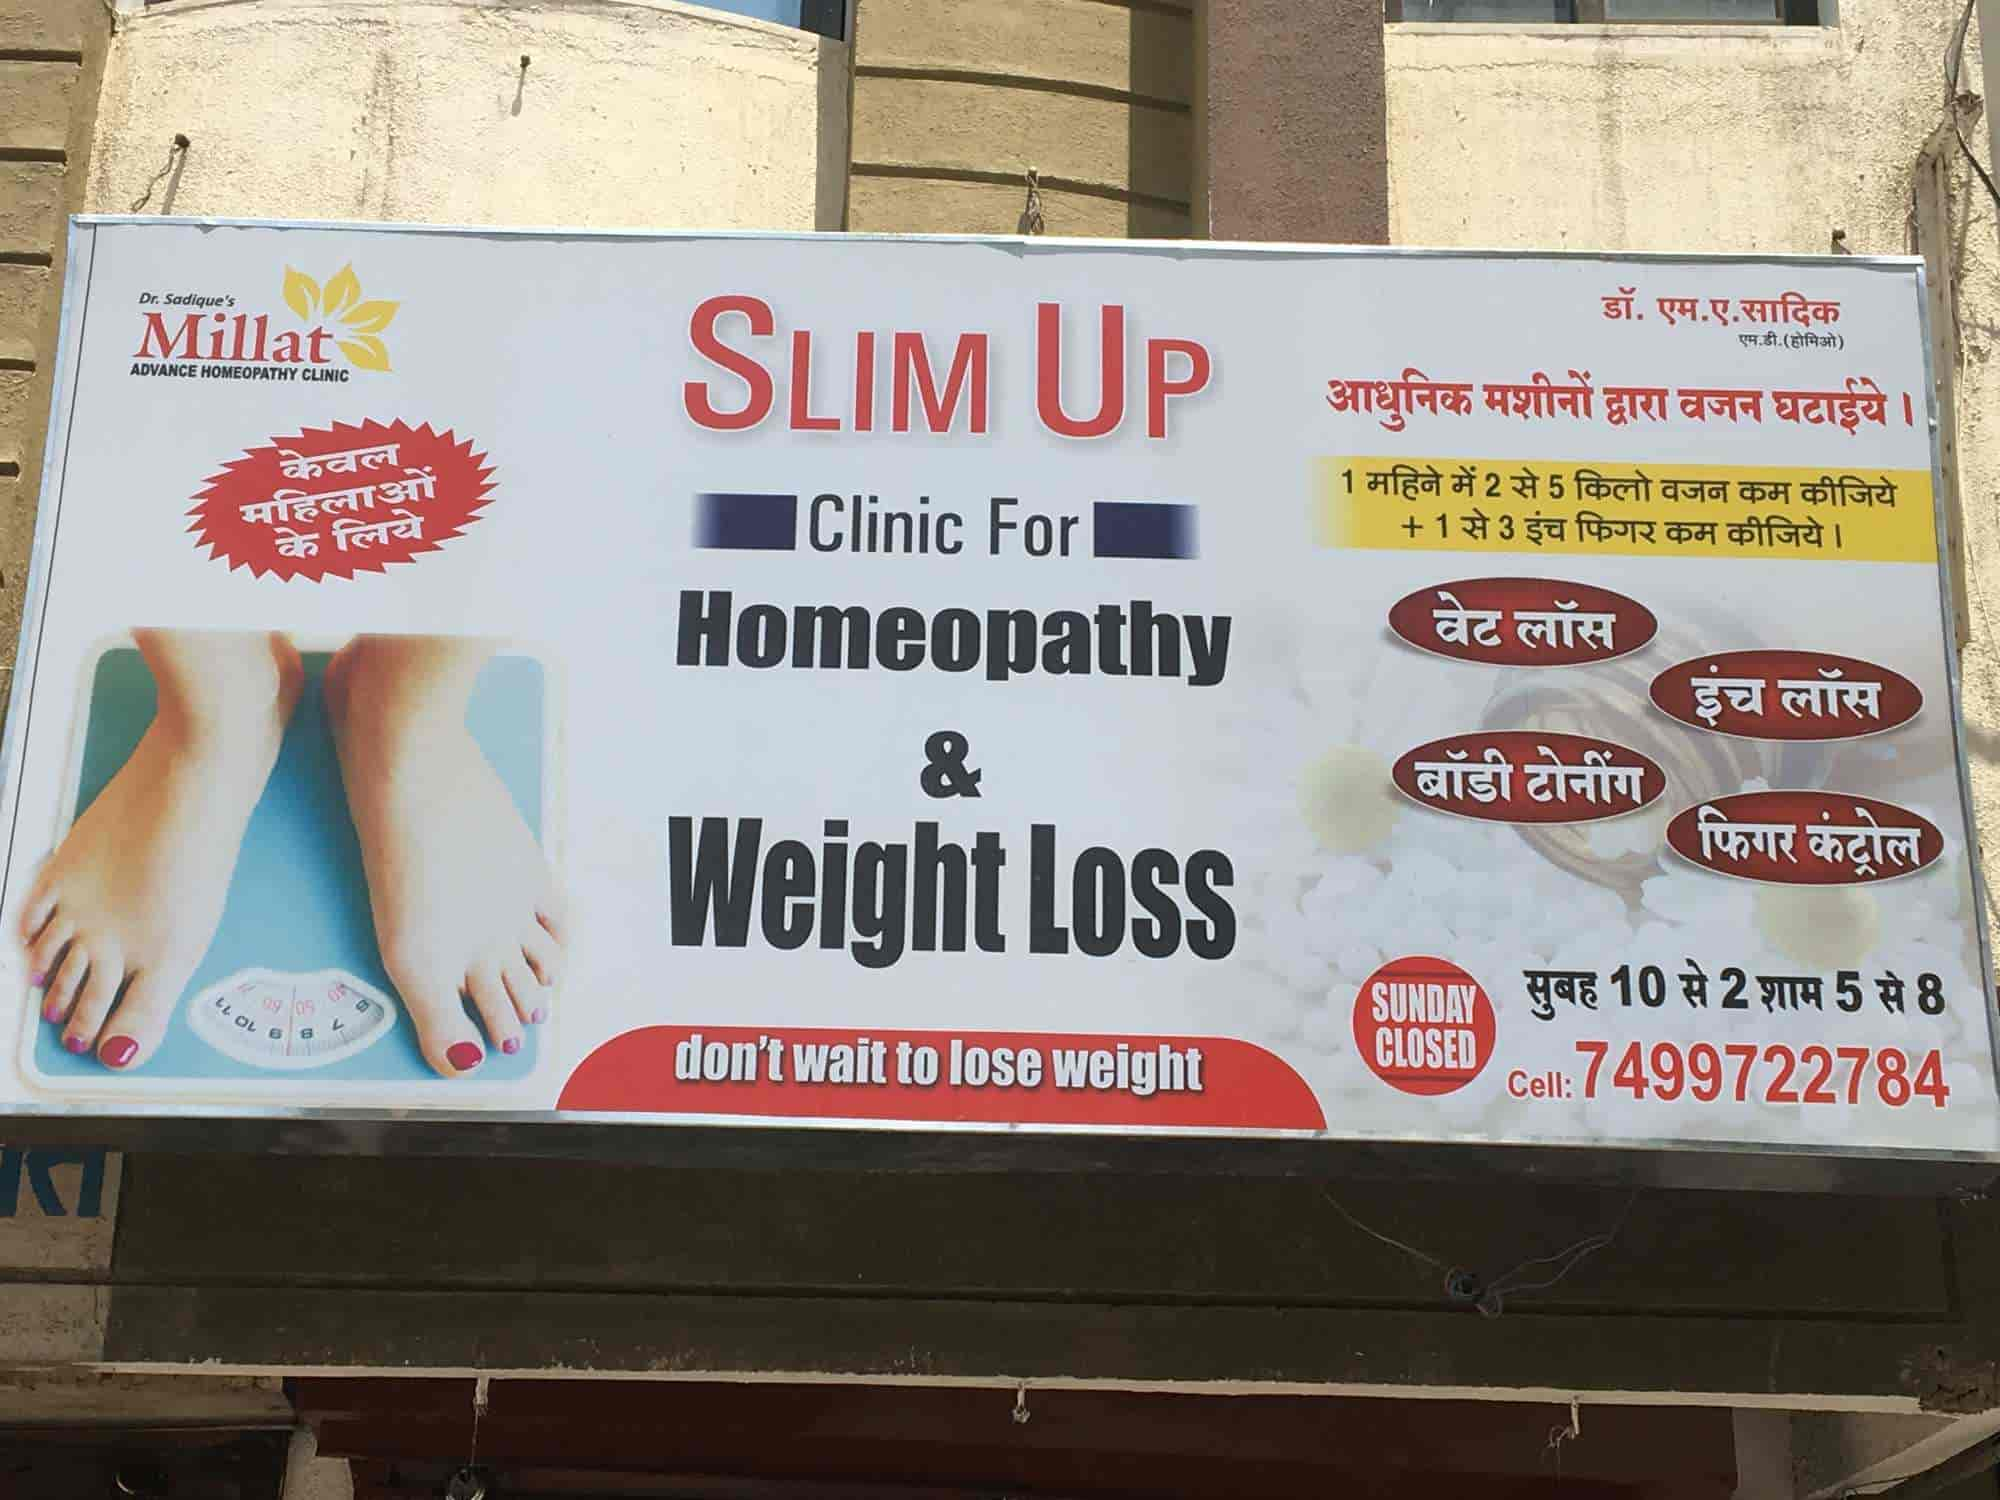 Millat Advance Homeopathic Clinic Photos, , Akola- Pictures